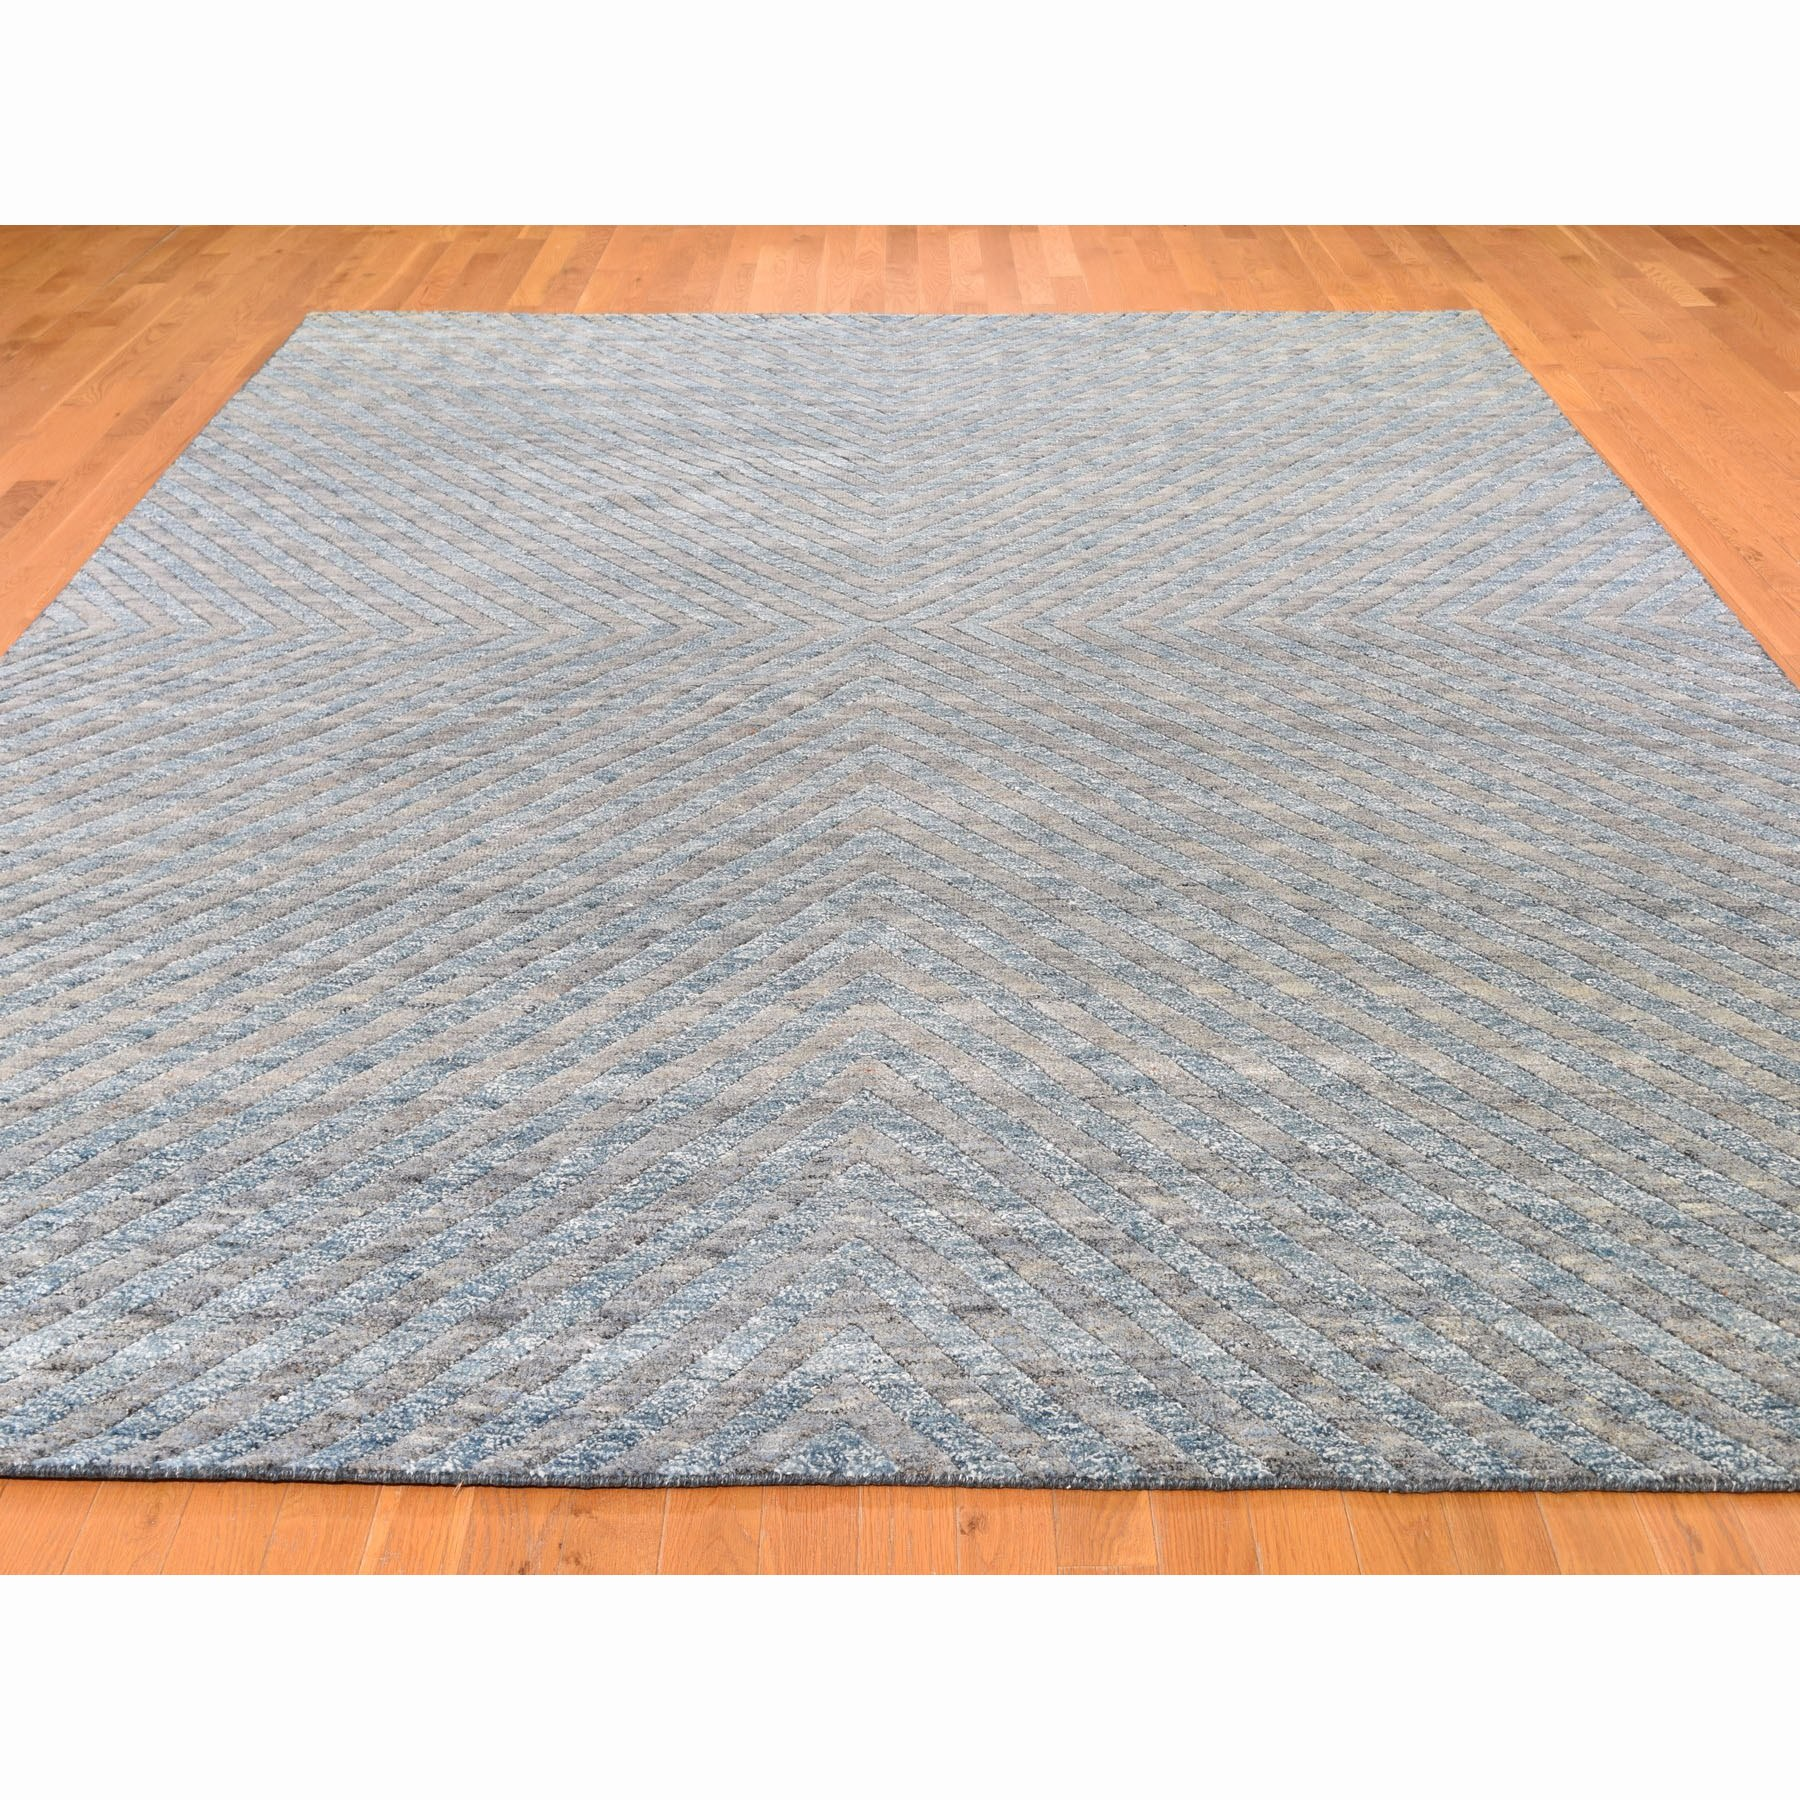 9-1 x11-10  Blue Pure Wool Geometric Design Thick And Plush Hand Knotted Modern Oriental Rug